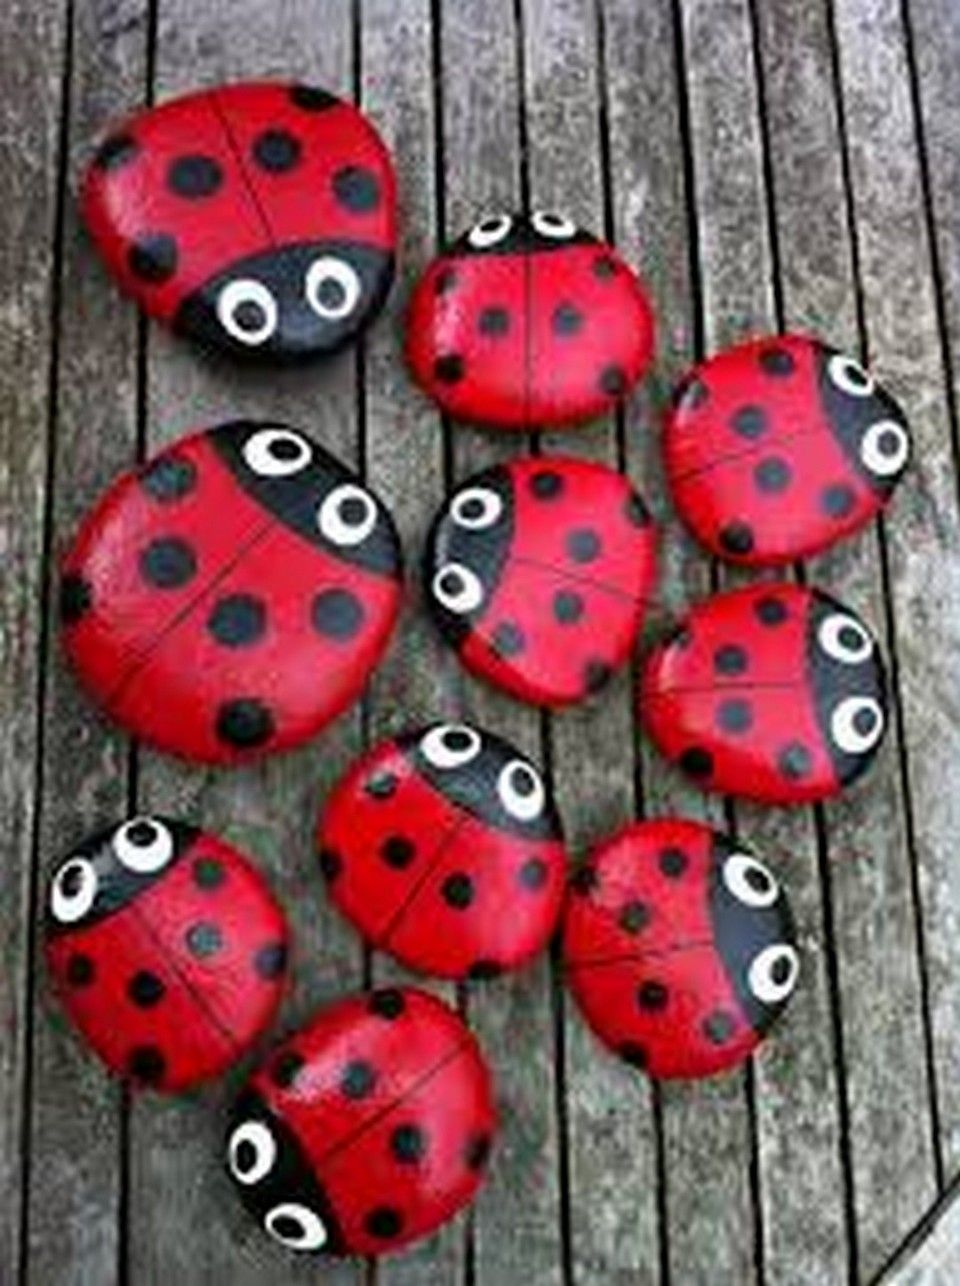 99 Diy Ideas Of Painted Rocks With Inspirational Picture And Words 99architecture Ladybug Rocks Rock Painting Designs Painted Rocks